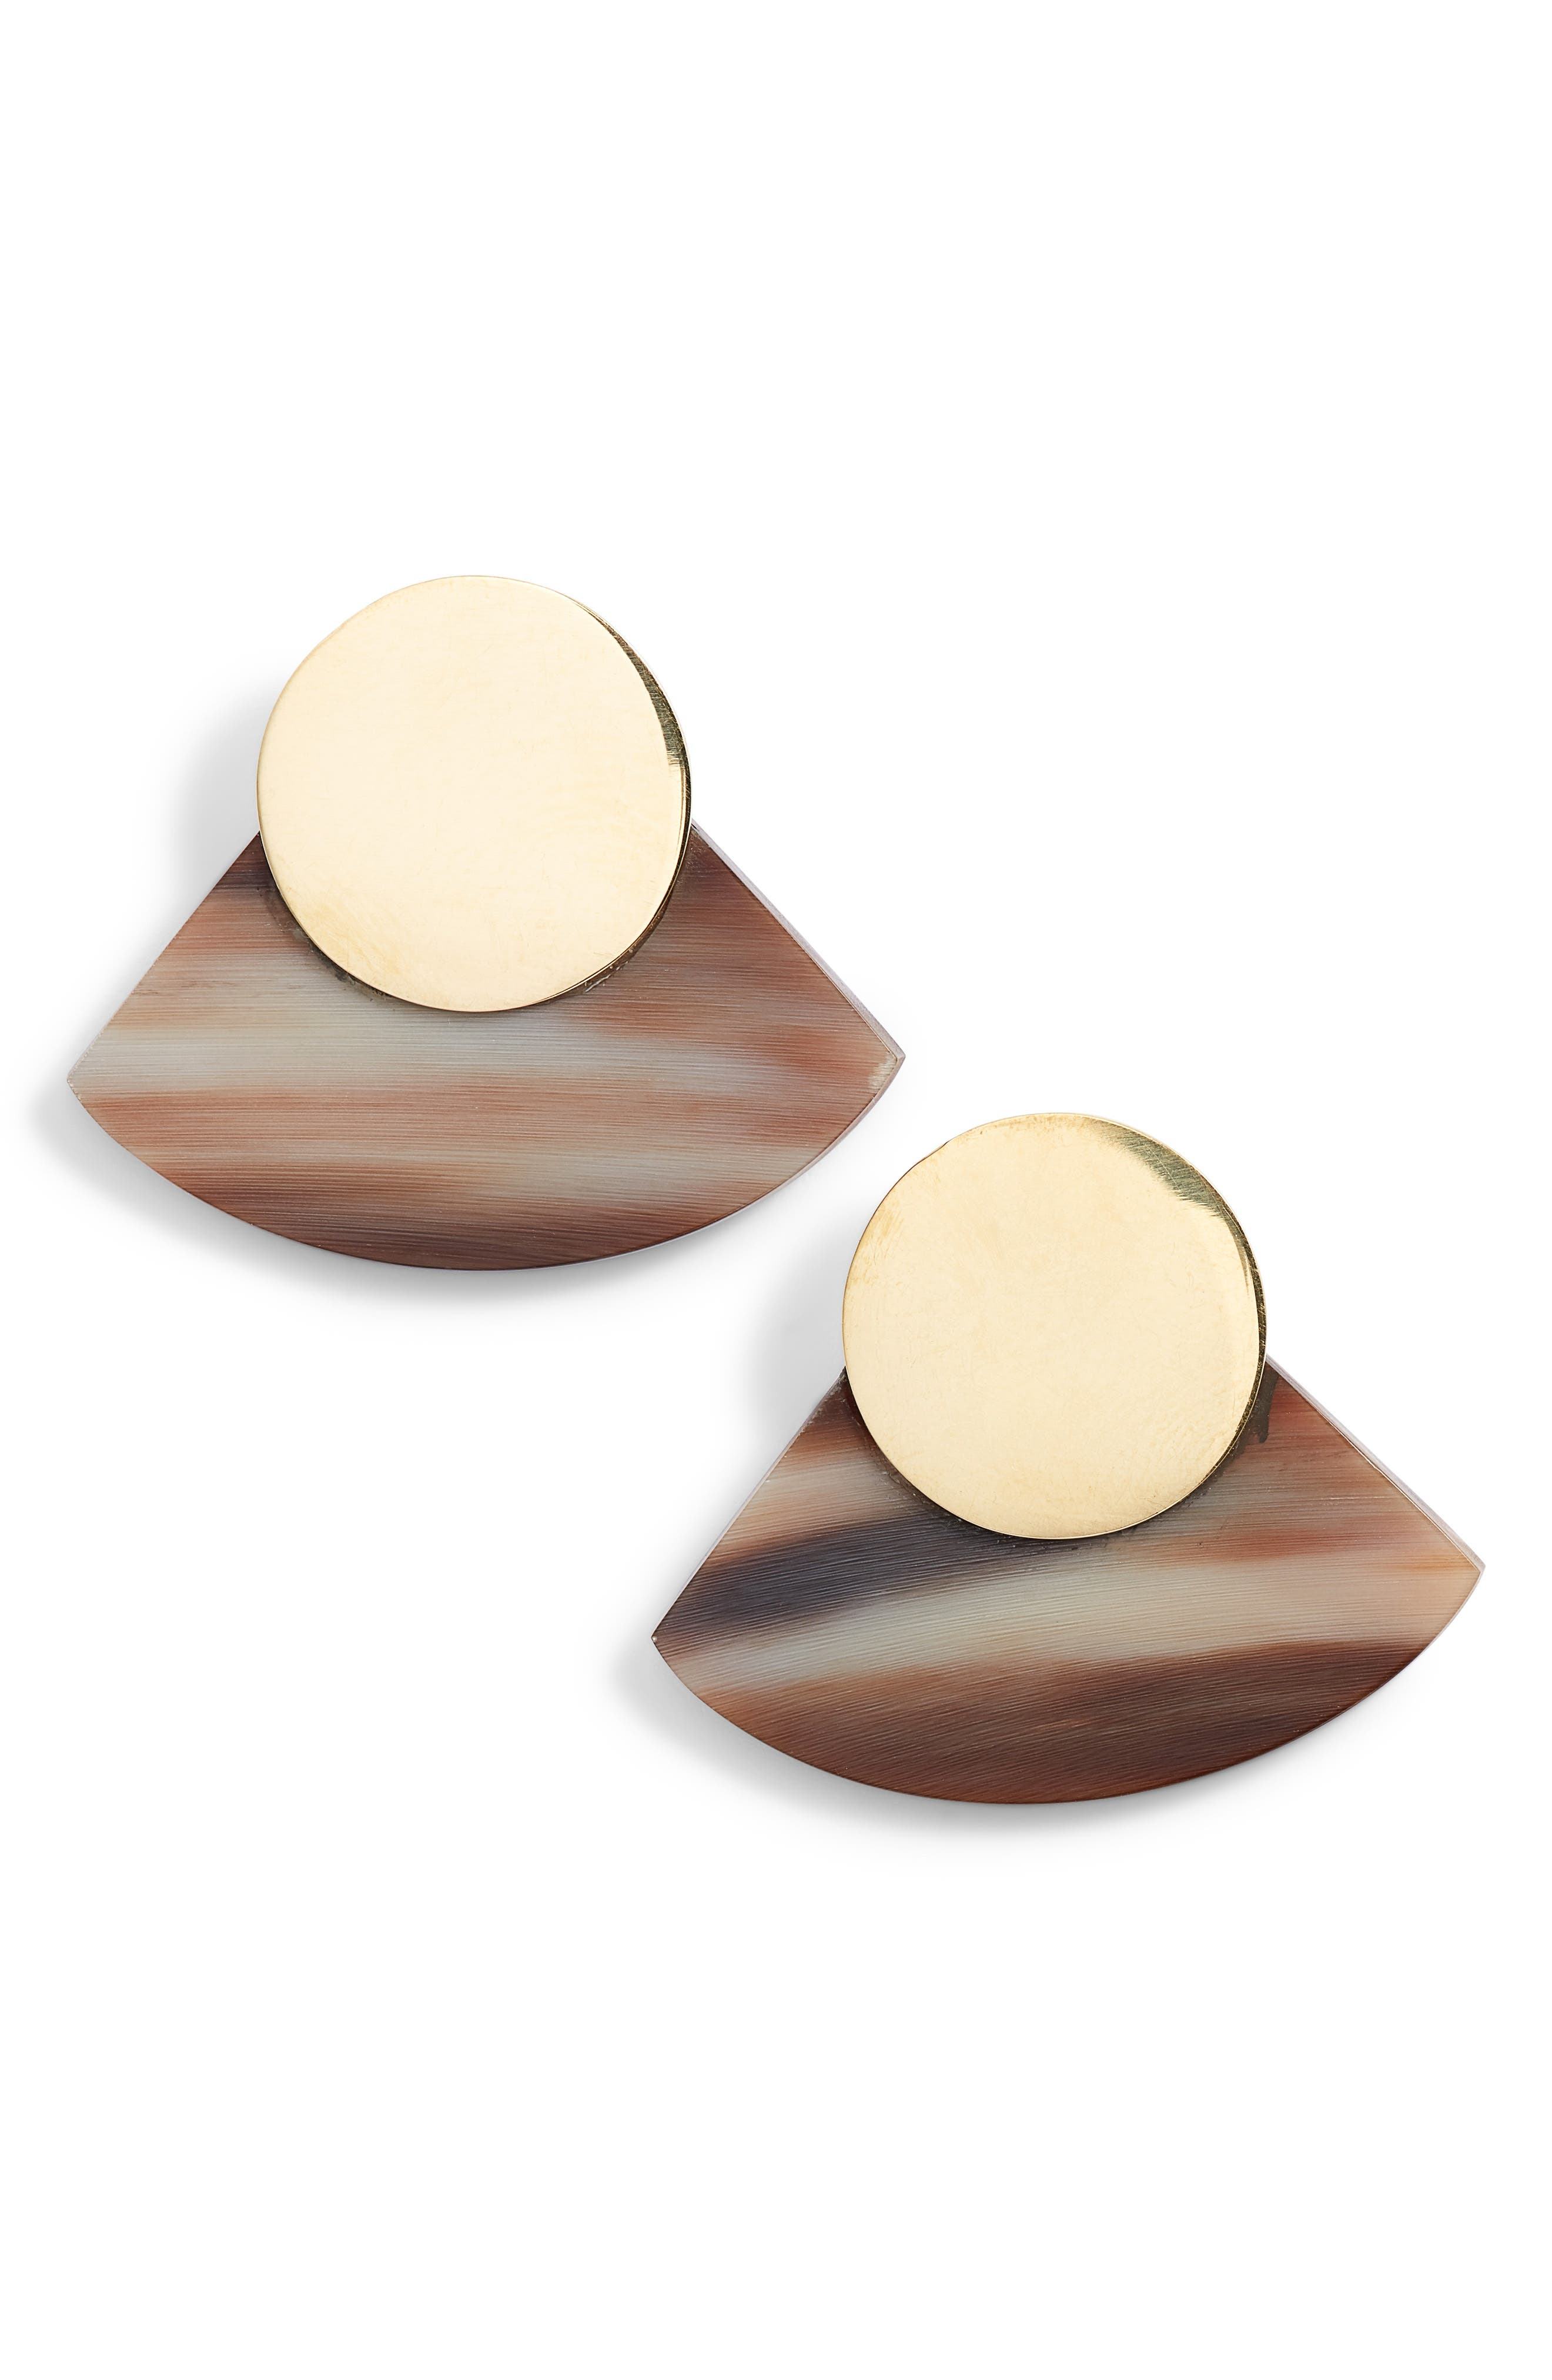 Horn Paddle Stud Earrings,                             Main thumbnail 1, color,                             NATURAL/ BRASS